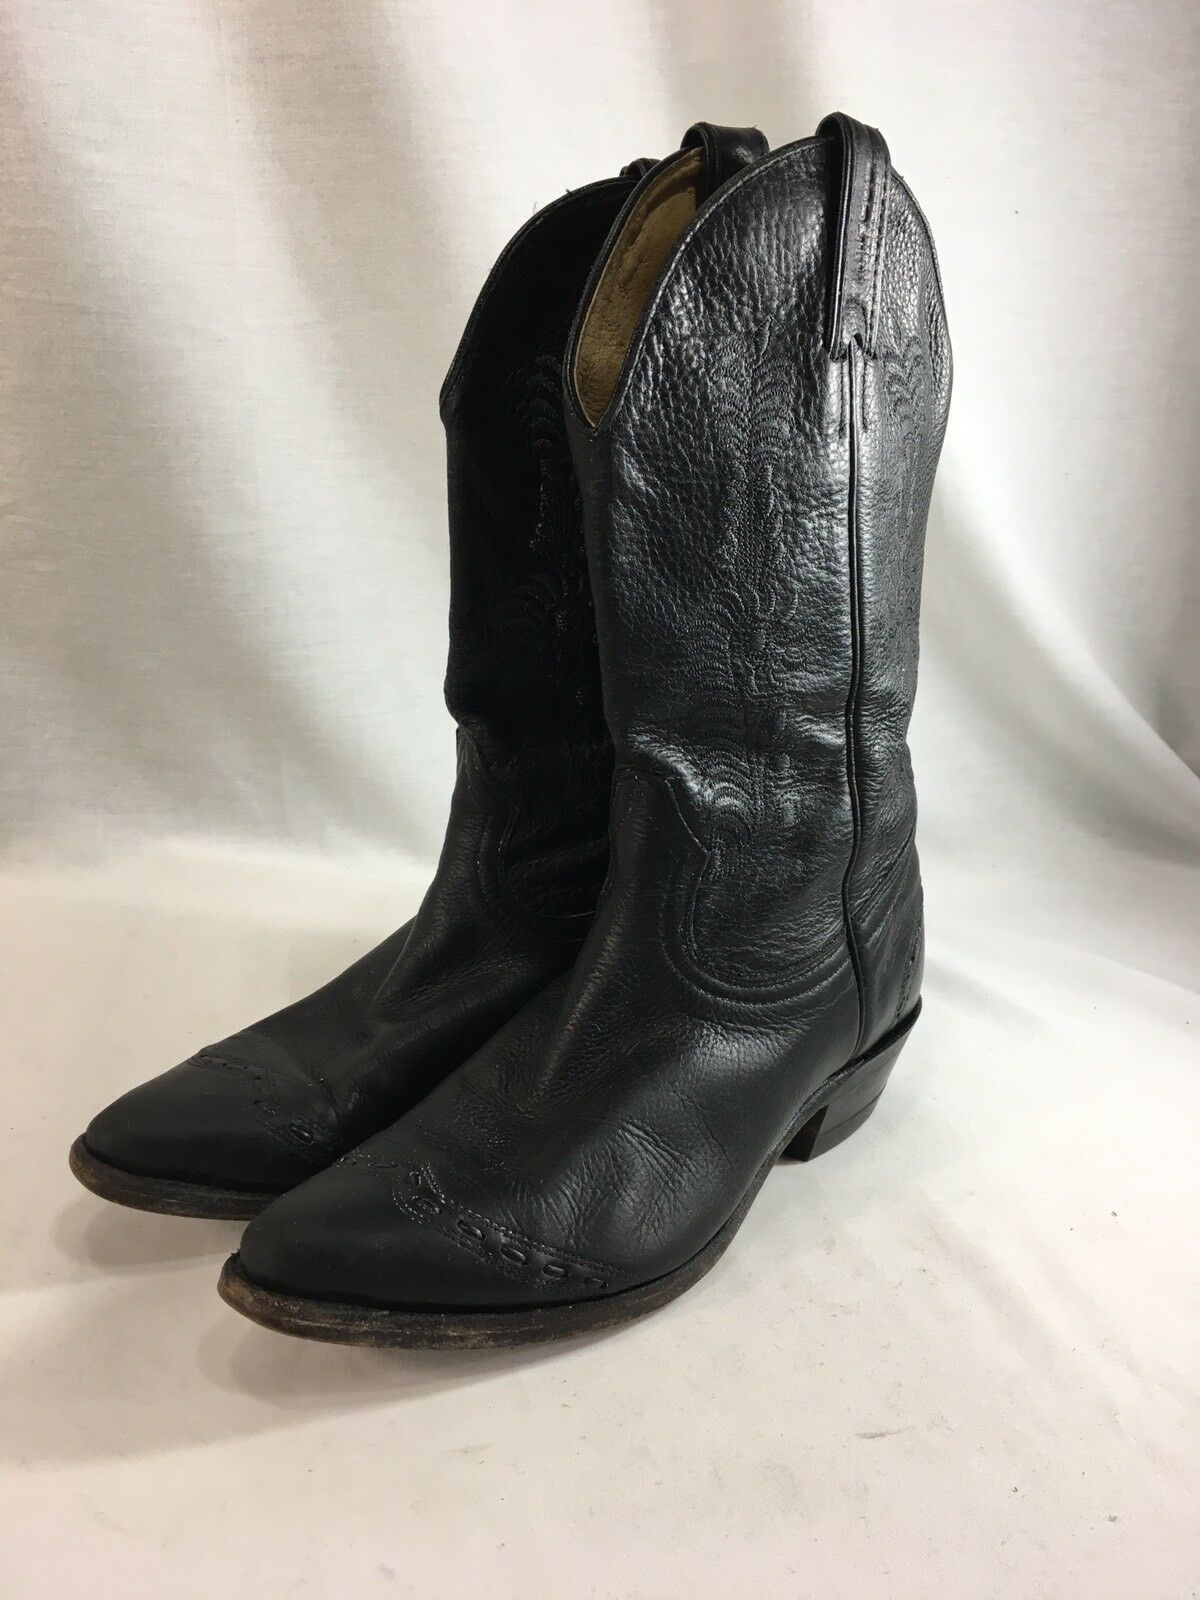 Boulet Cowboy Western stivali donna 7.5 nero Leather Block Heel Pointed Toe